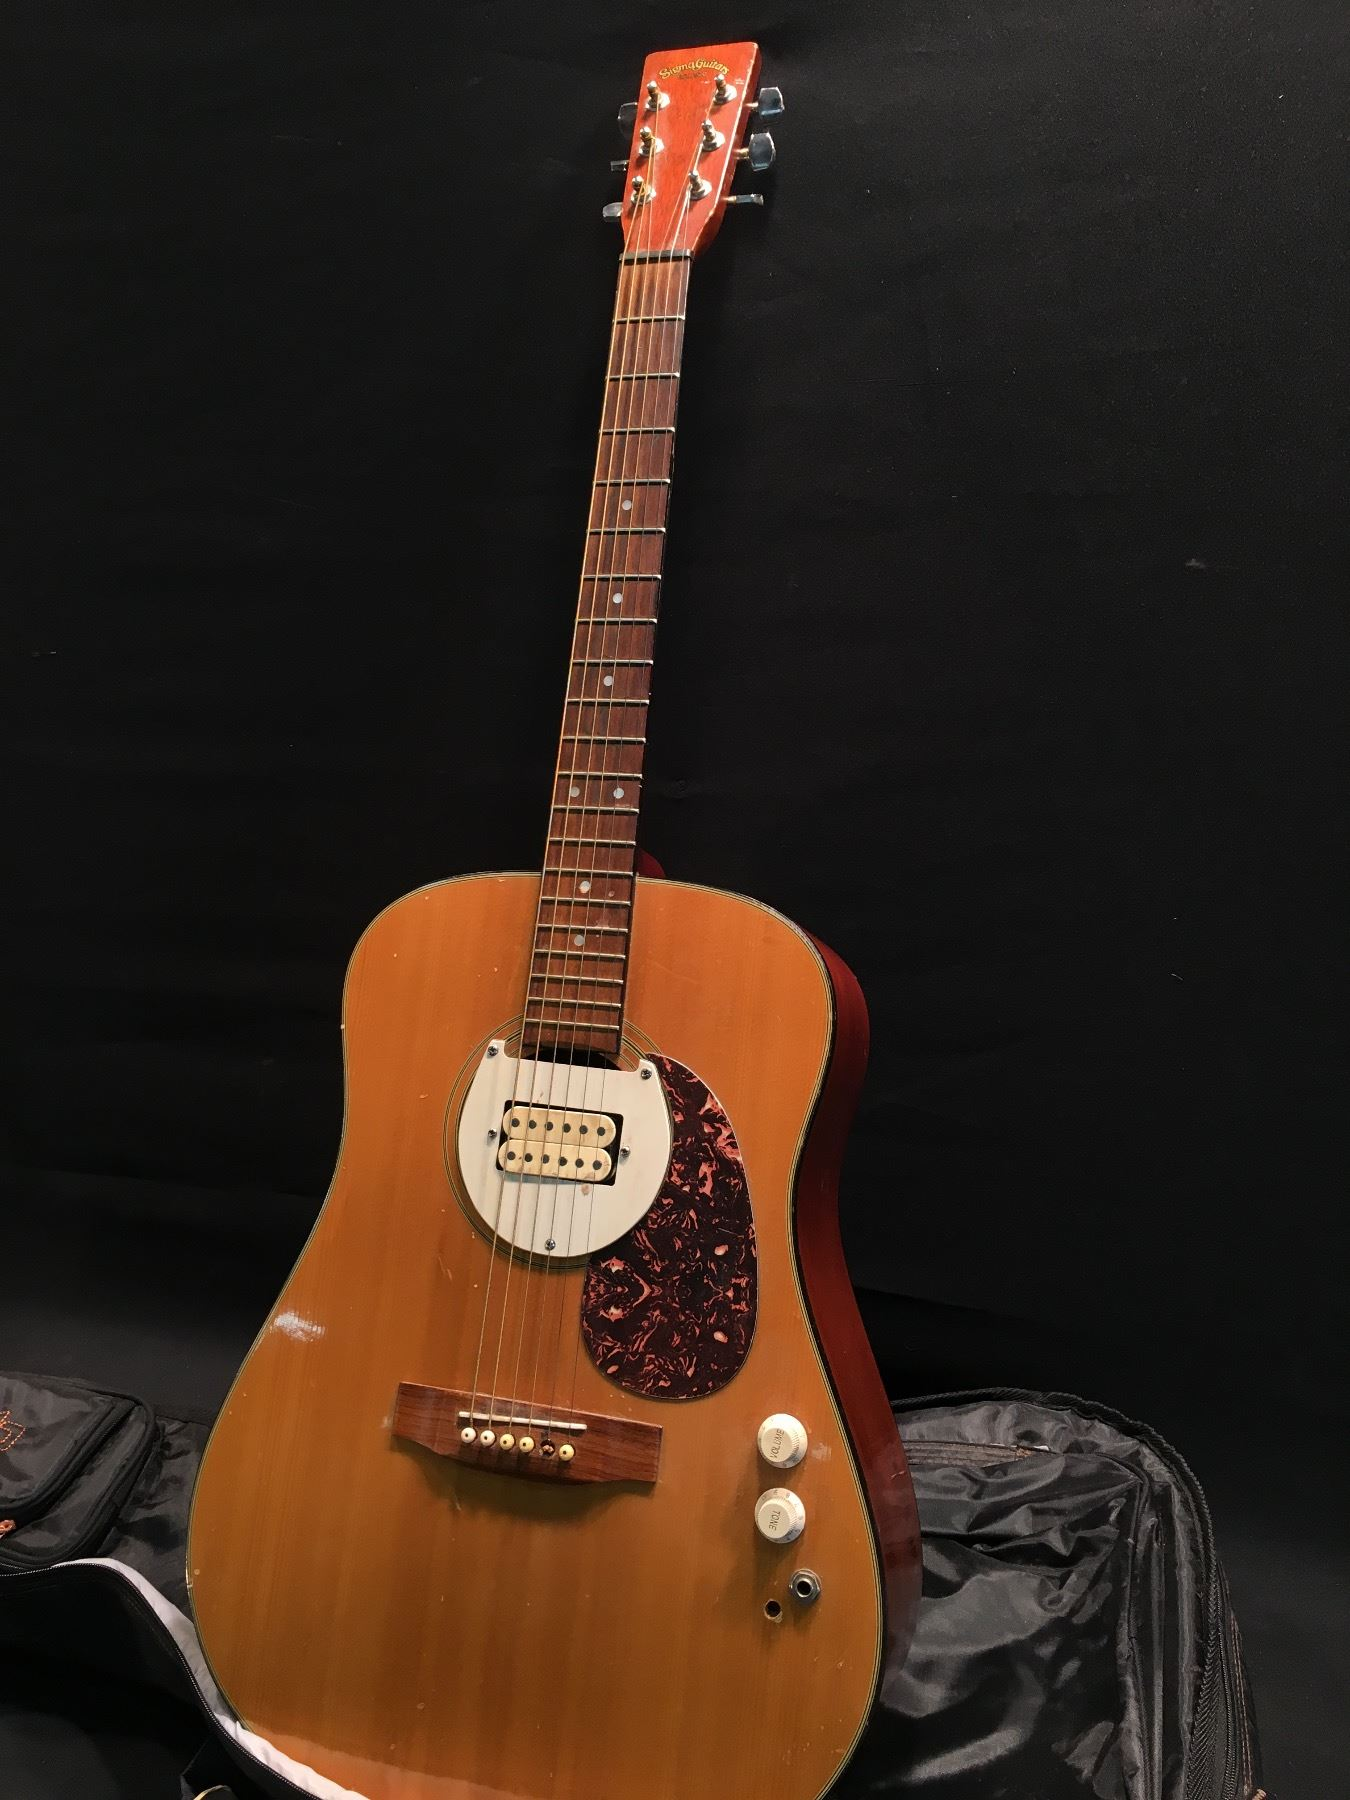 Sigma Model Dm2 Acoustic Guitar With Added Humbucker Pickup Tone